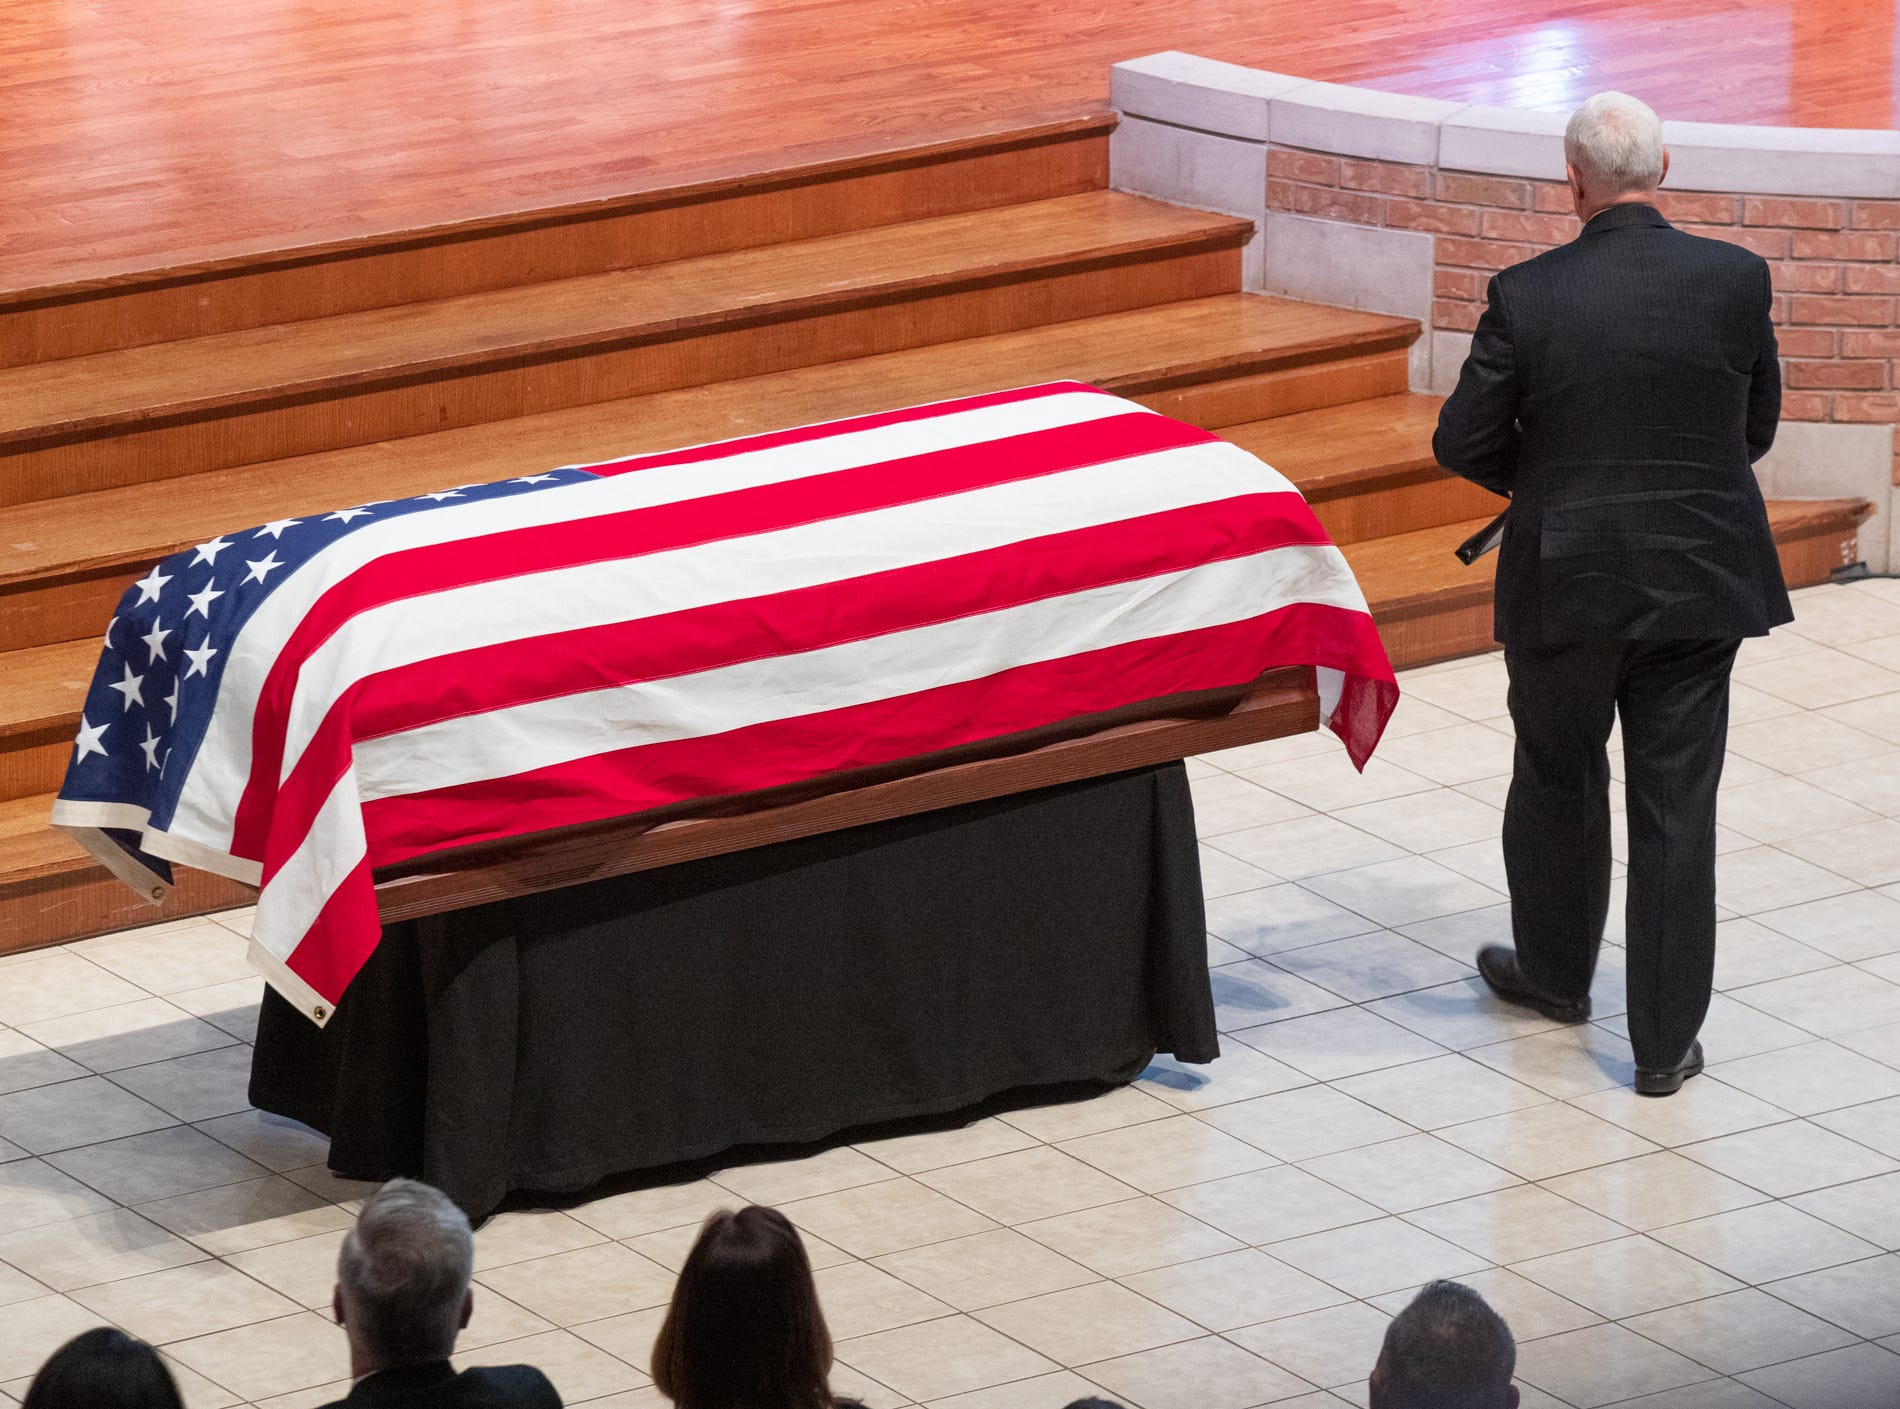 Vice President Mike Pence passes the casket of former U.S. Sen. Richard Lugar to pay tribute during a memorial service held at Saint Luke's United Methodist Church in Indianapolis, on Wednesday, May 15, 2019. Lugar served as mayor of Indianapolis from 1968 to 1975 and U.S. senator from 1977 to 2013. He died April 28, 2019, at the age of 87.